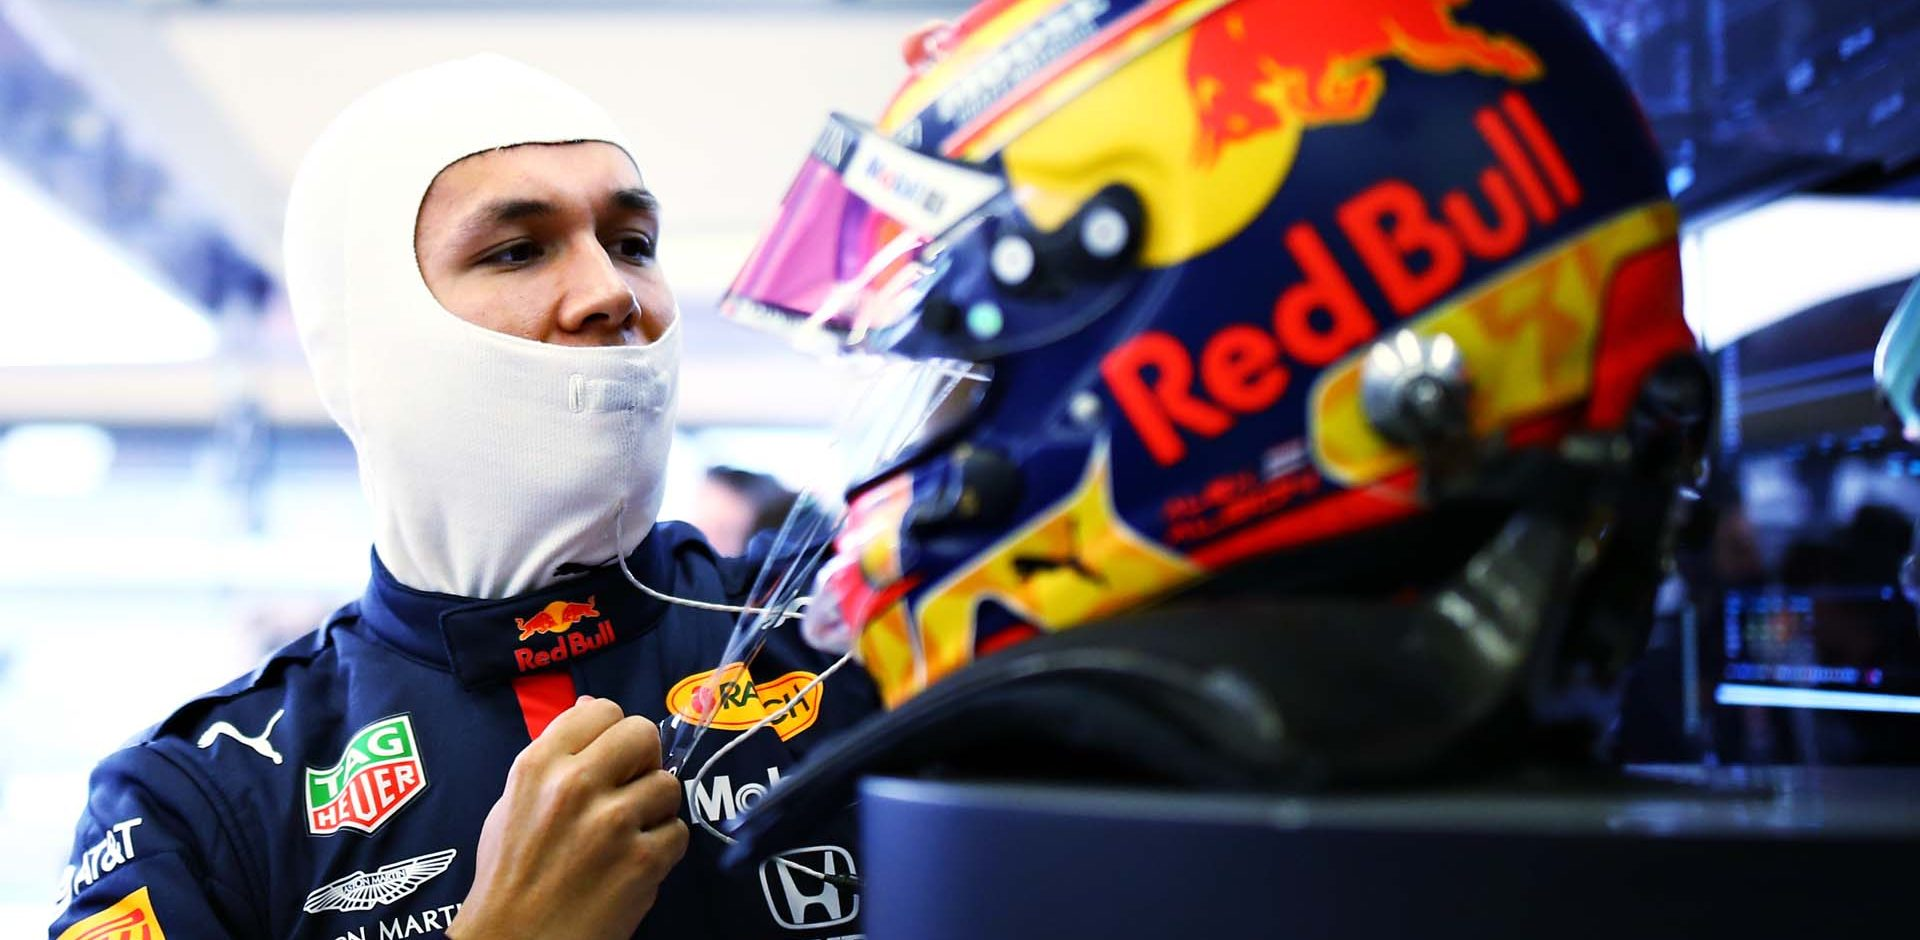 ISTANBUL, TURKEY - NOVEMBER 14: Alexander Albon of Thailand and Red Bull Racing prepares to drive in the garage during final practice ahead of the F1 Grand Prix of Turkey at Intercity Istanbul Park on November 14, 2020 in Istanbul, Turkey. (Photo by Bryn Lennon/Getty Images)